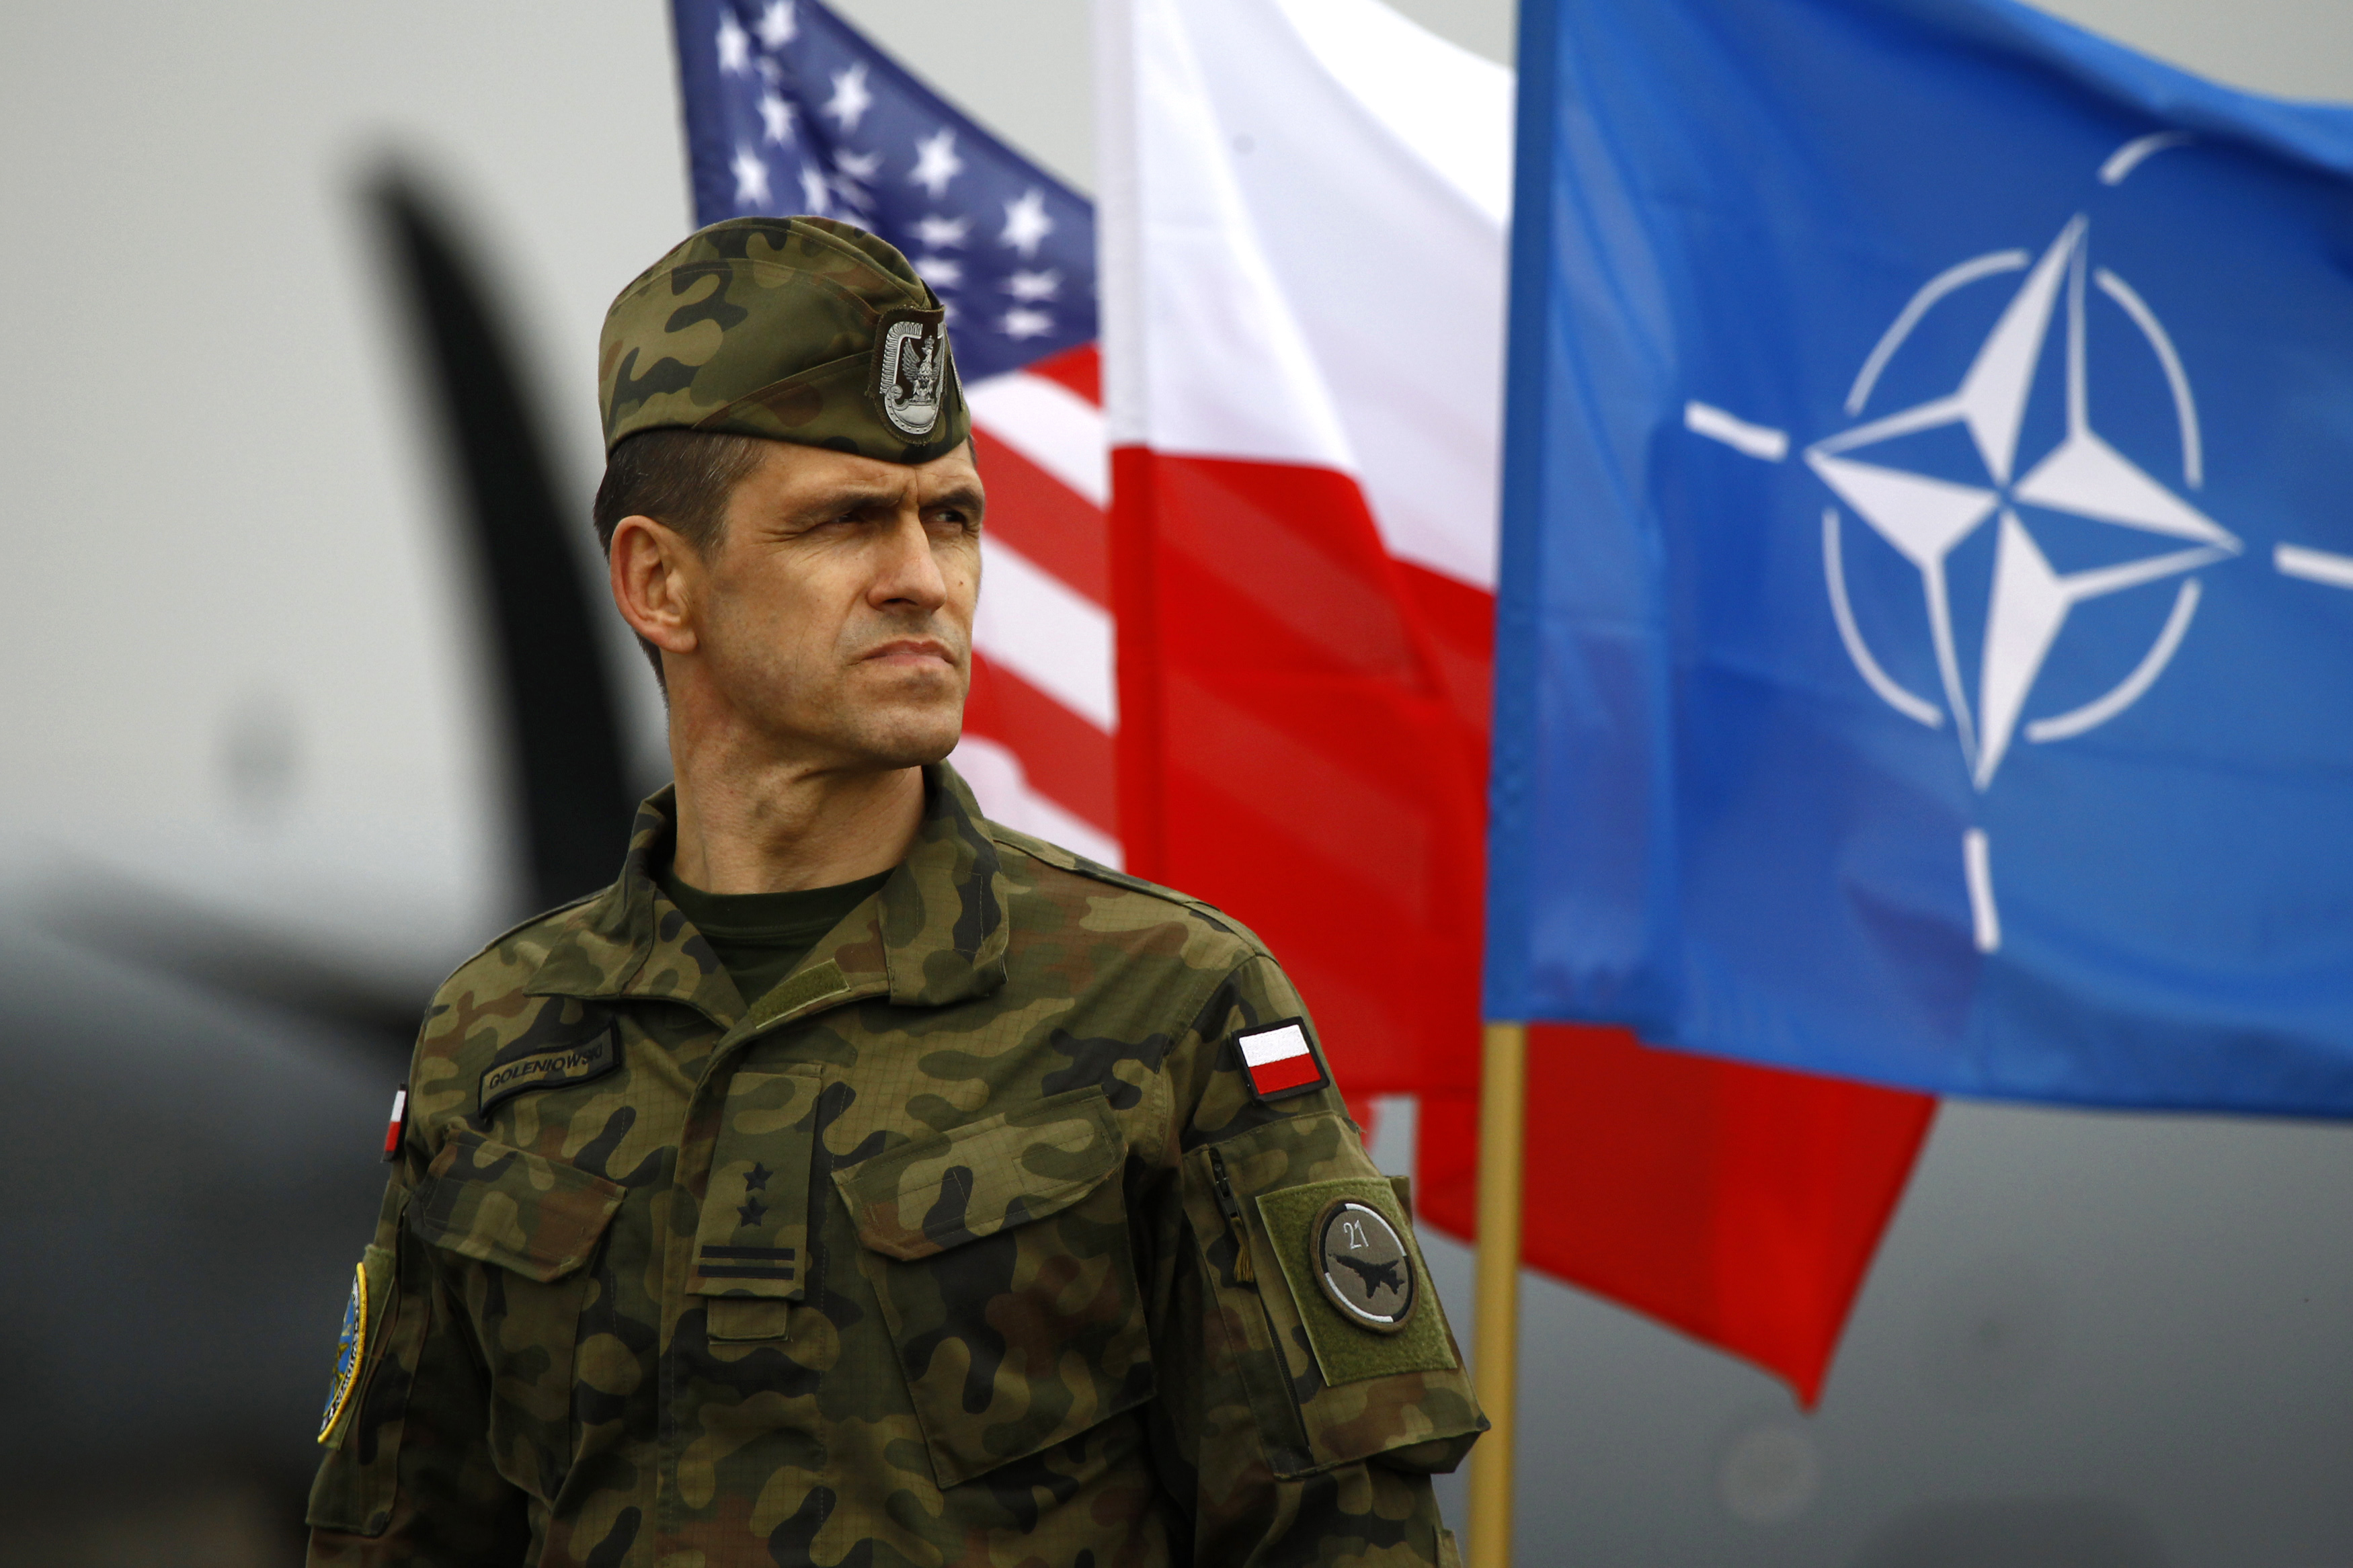 US Signs Agreement With Poland Giving US Military More 'Lebensraum' In The East